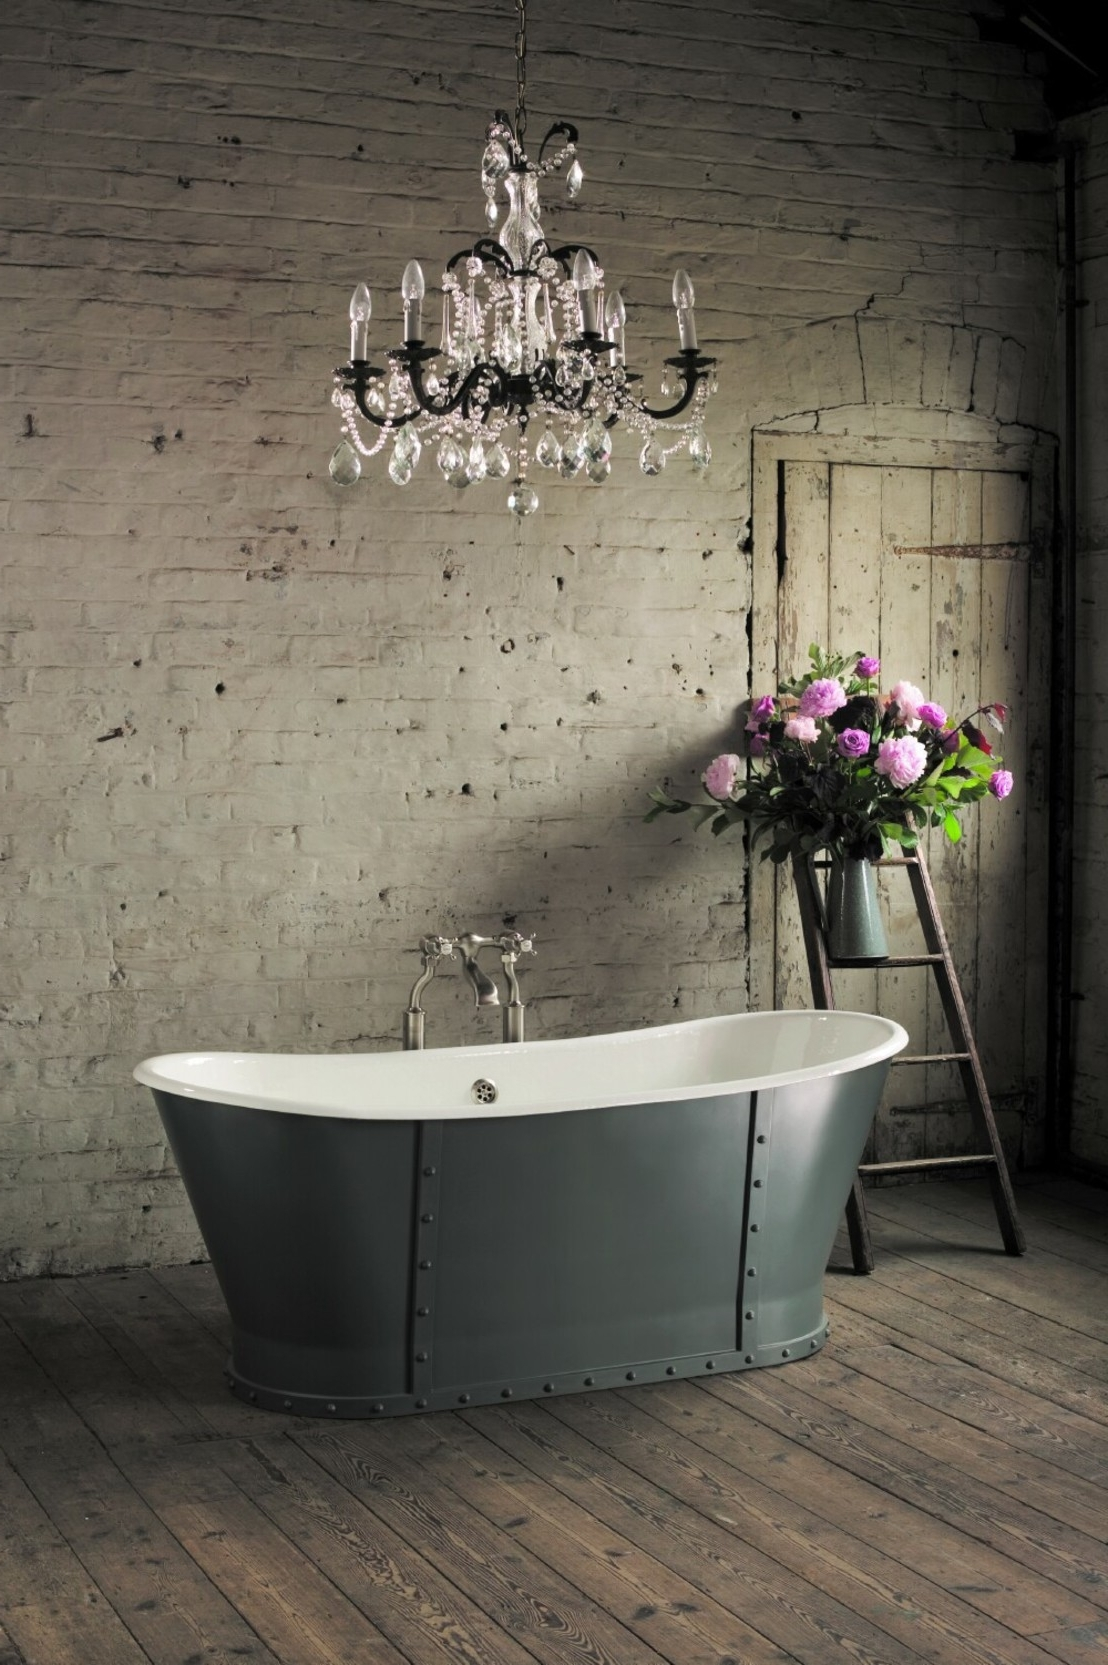 21 Ideas To Decorate Lamps & Chandelier In Bathroom Pertaining To Best And Newest Chandelier In The Bathroom (View 1 of 15)